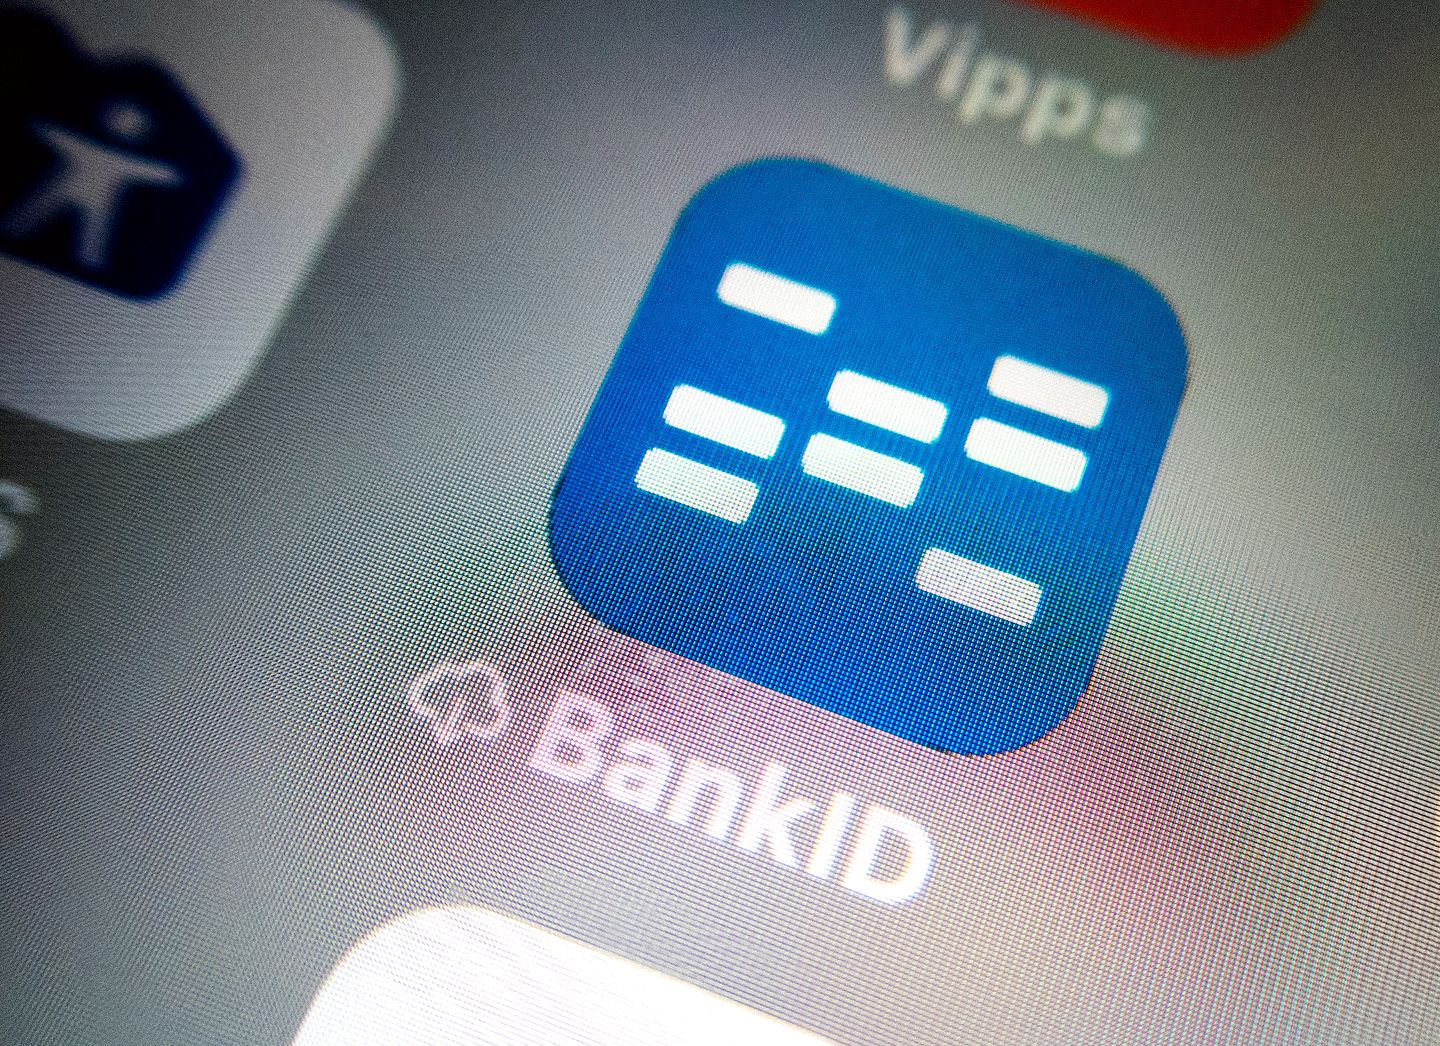 BankID-trøbbel for Telenor-kunder løst